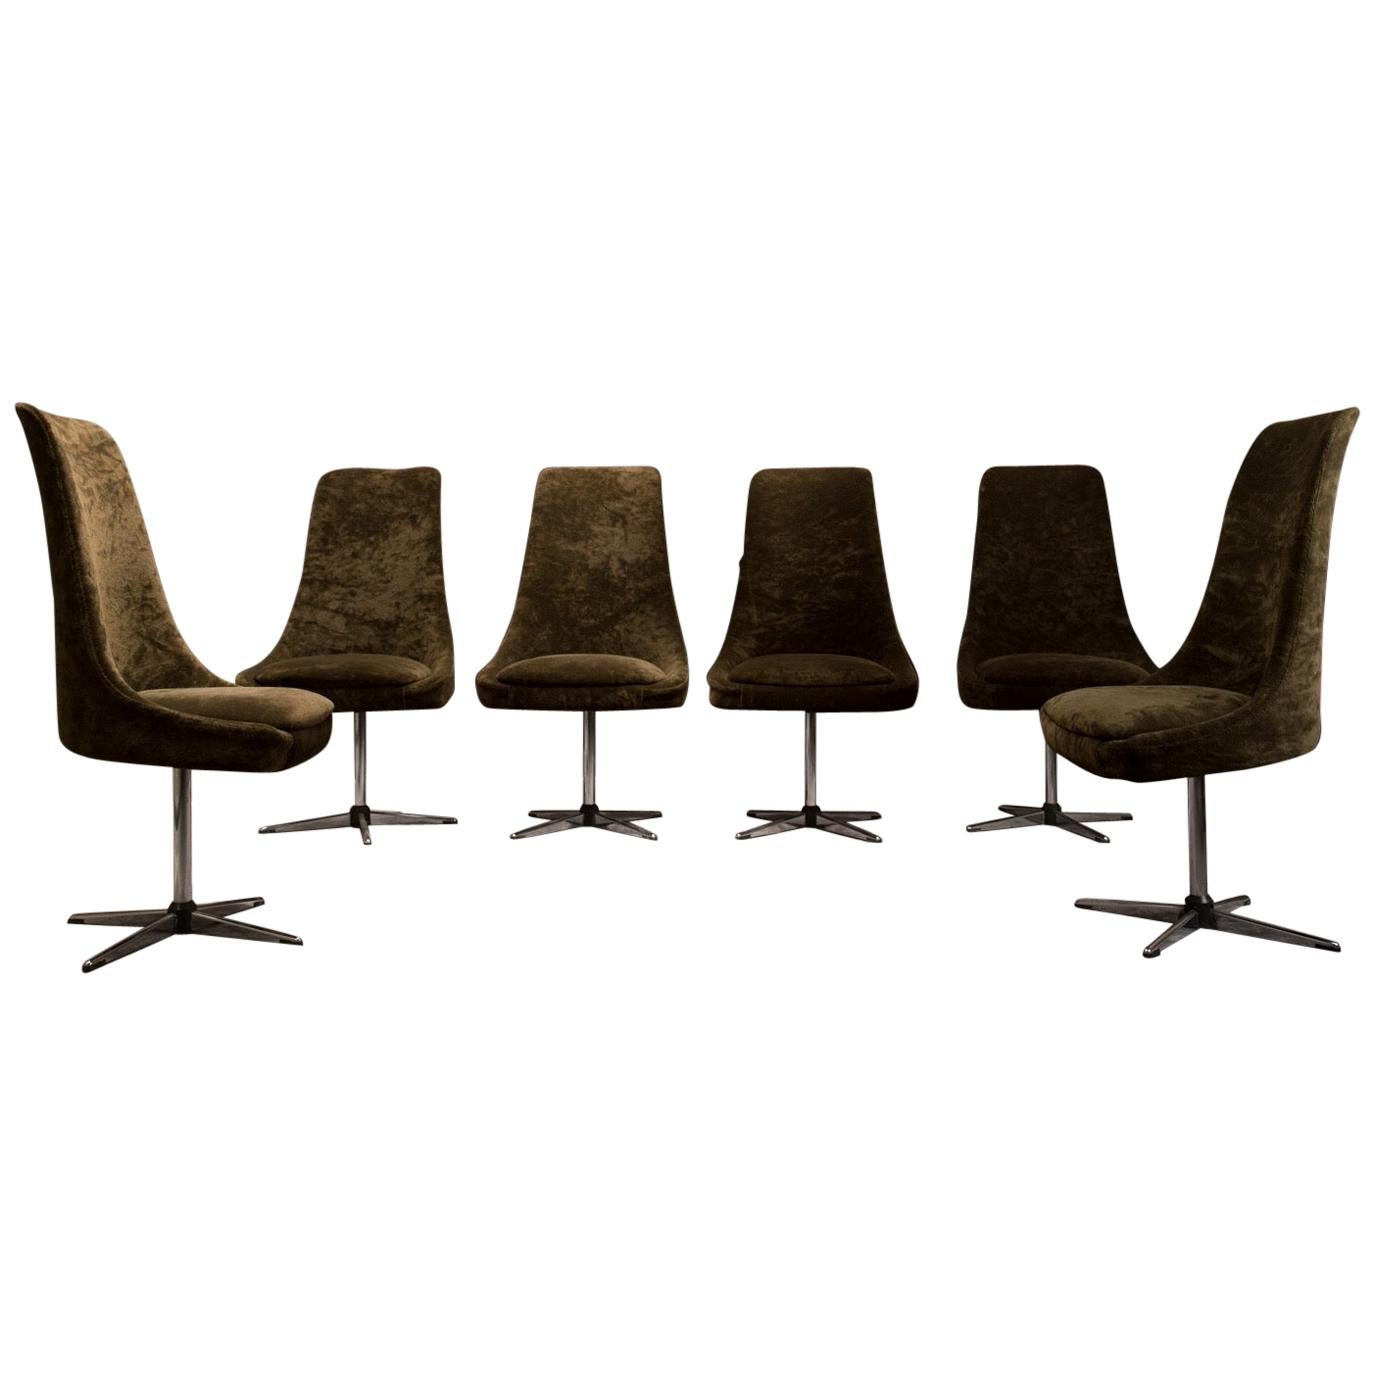 Late 20th Century Brown and Steel Italian Set of Six Swivel Chairs